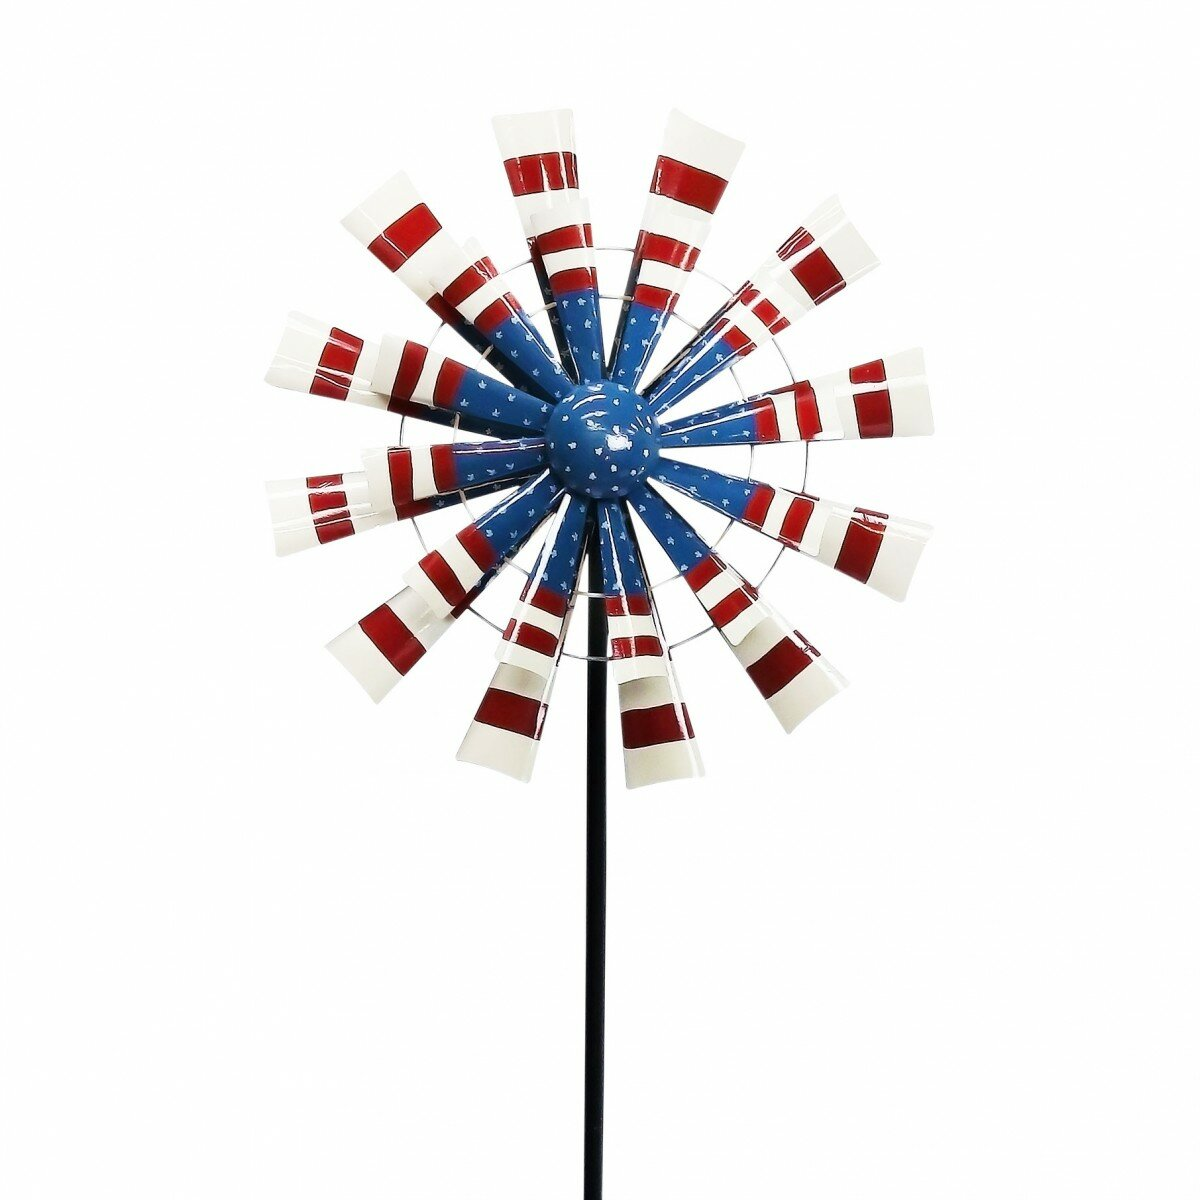 Autumn Palette Kinetic Wind Spinner Outdoor Lawn Decor Durable Metal Yard Art